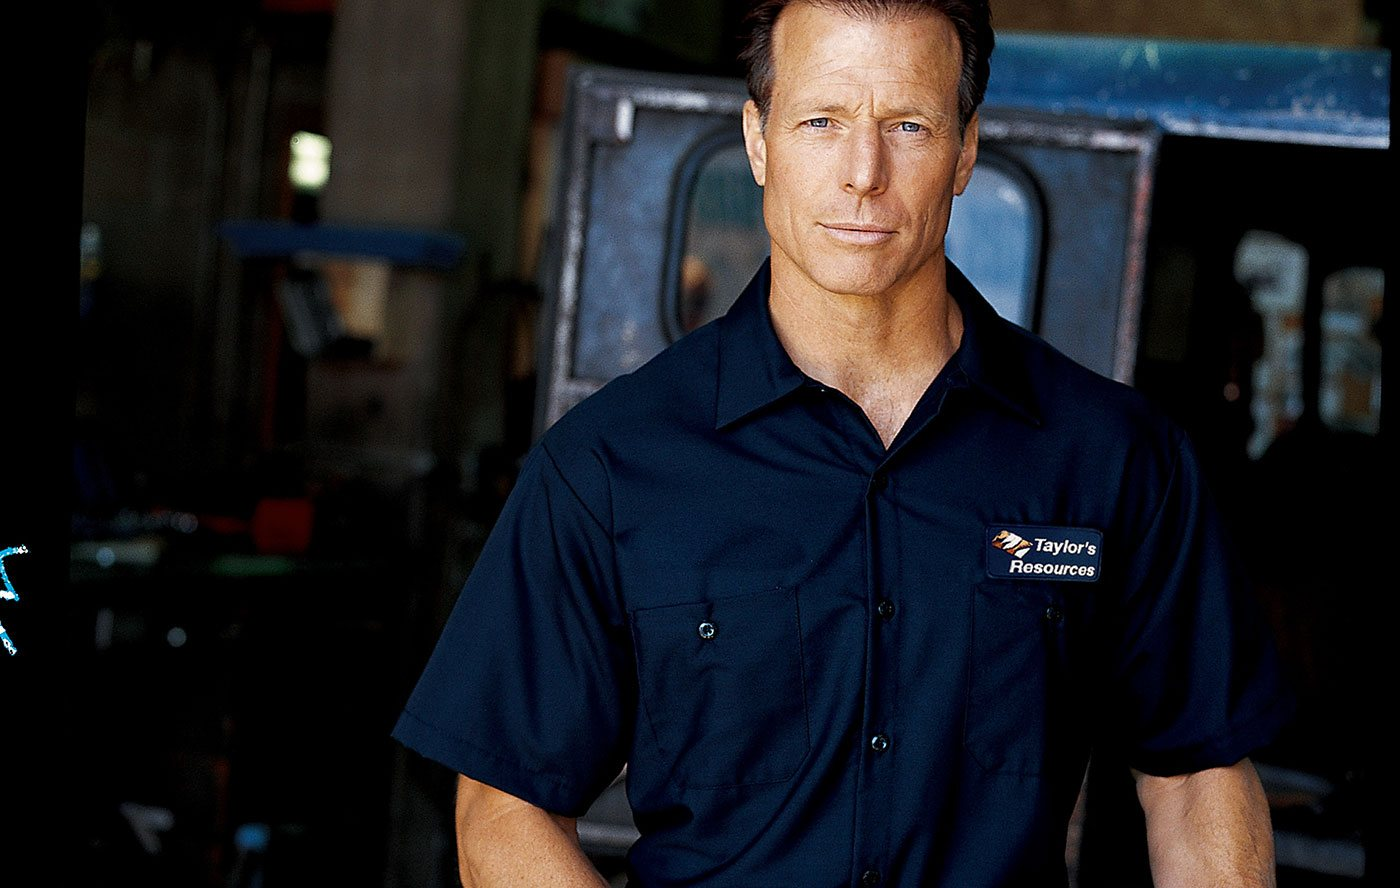 Mechanic in automotive uniform with his company's logo on the button up blue shirt